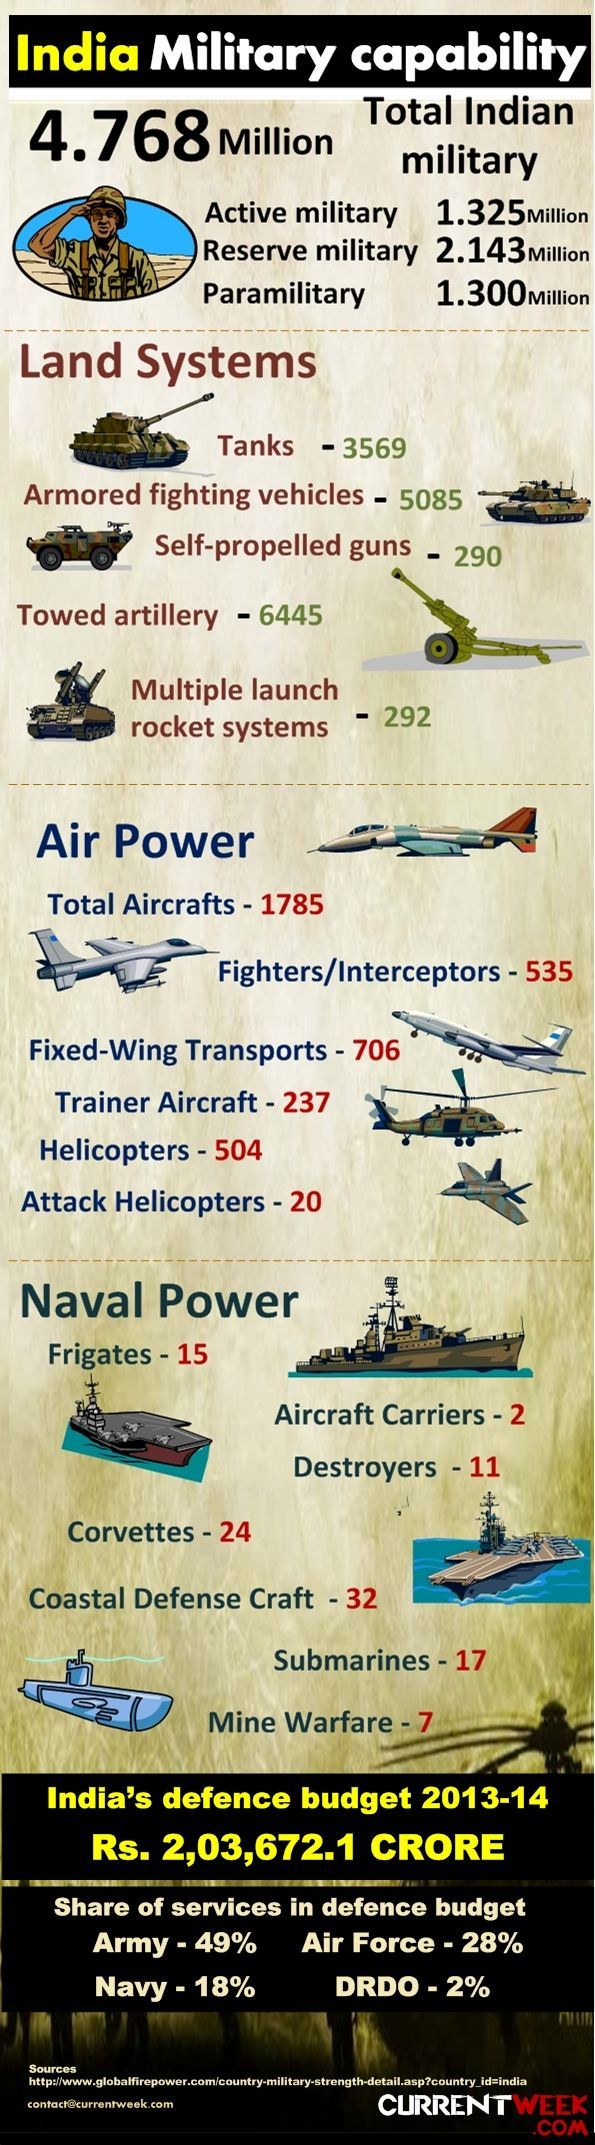 Indian Military Capability, Budget, Capacity - Infographic | Currentweek.com